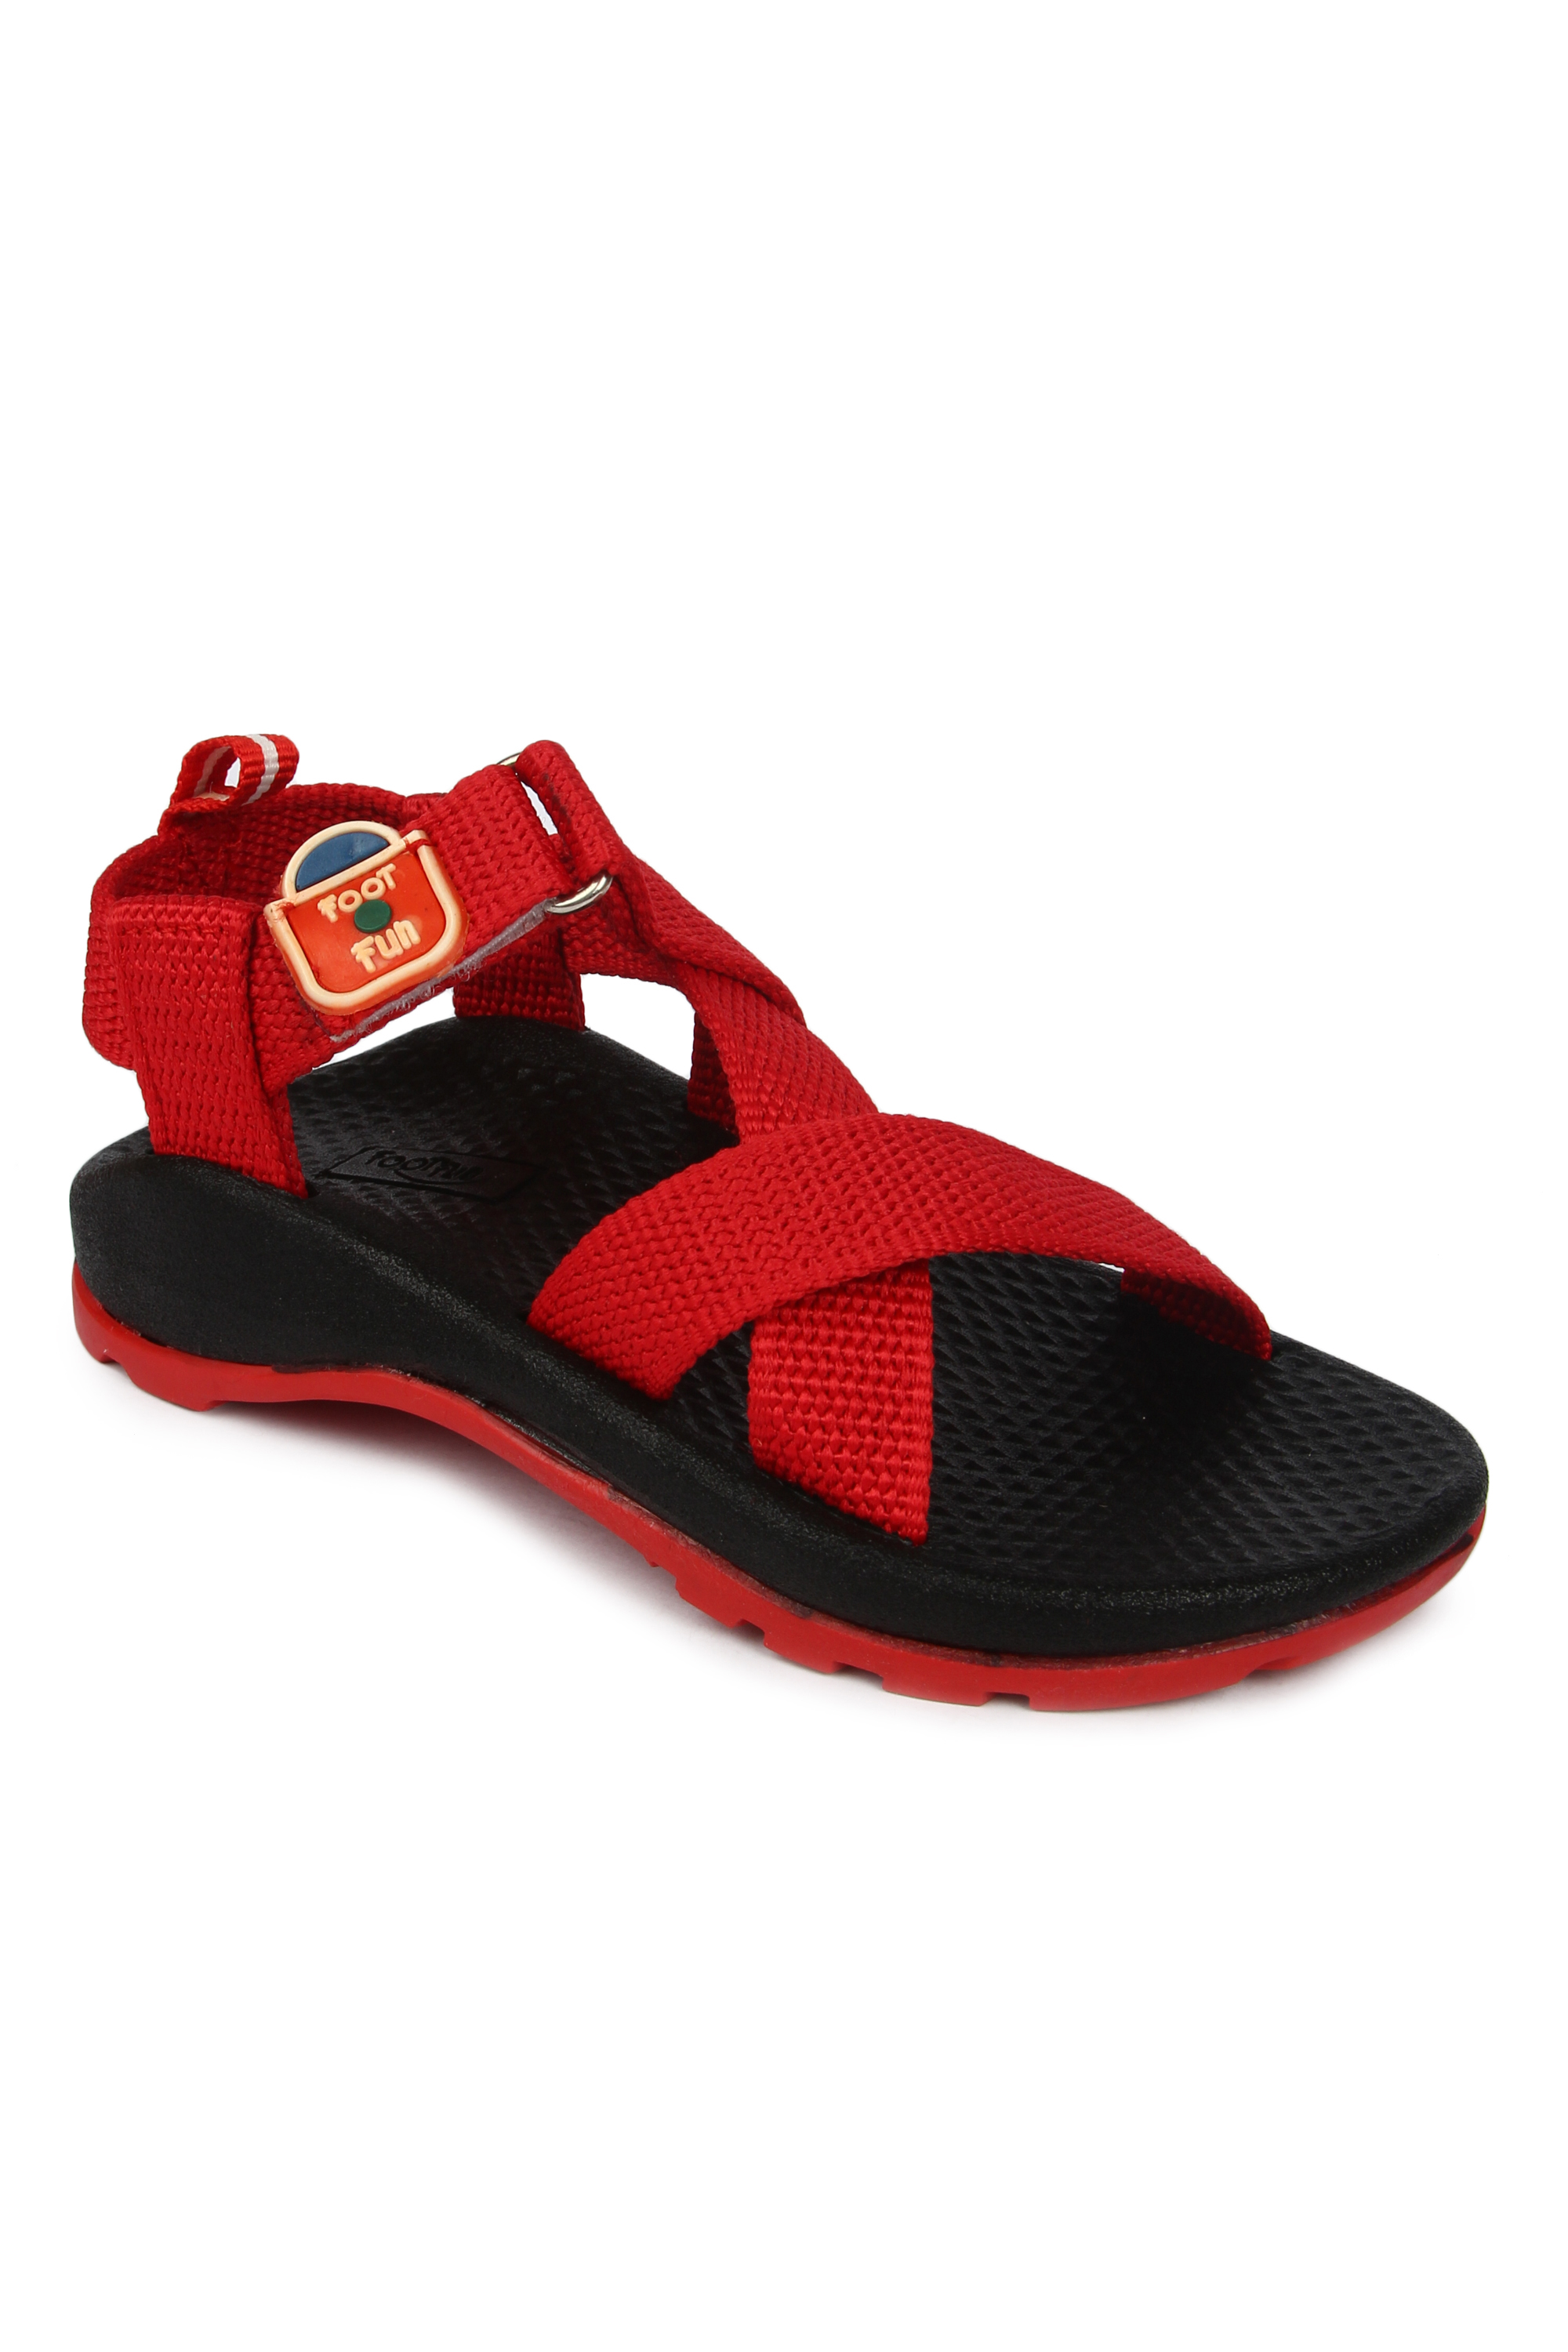 Liberty | Liberty Footfun Red Sandals CHILLY-2 For - Kids